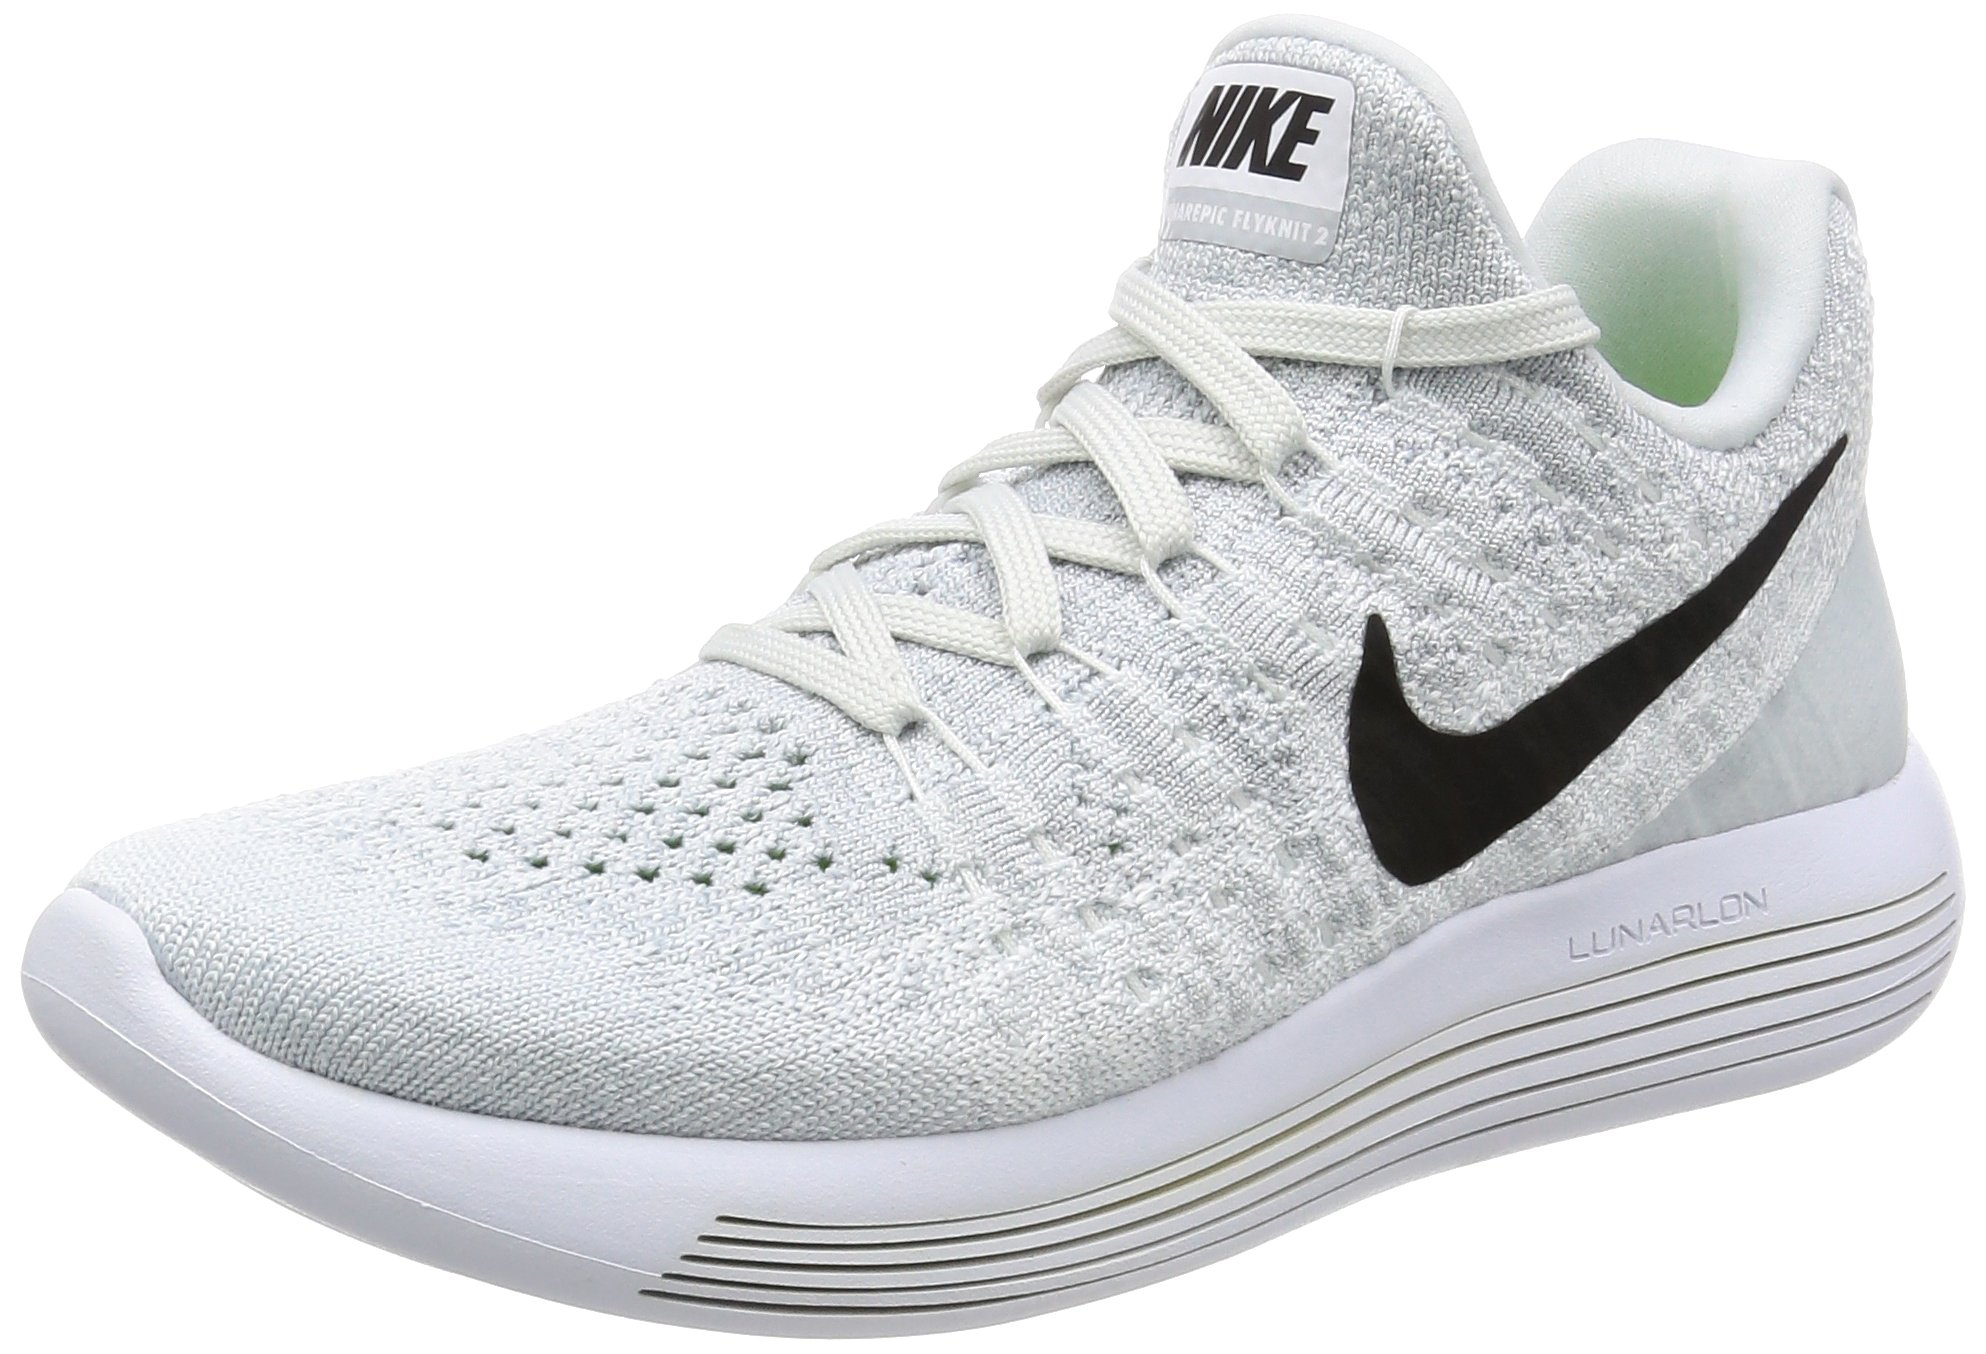 93e1b4c8a7c64 Galleon - Nike Women s Lunarepic Low Flyknit 2 White Black Pure Platinum  Running Shoe 8 Women US